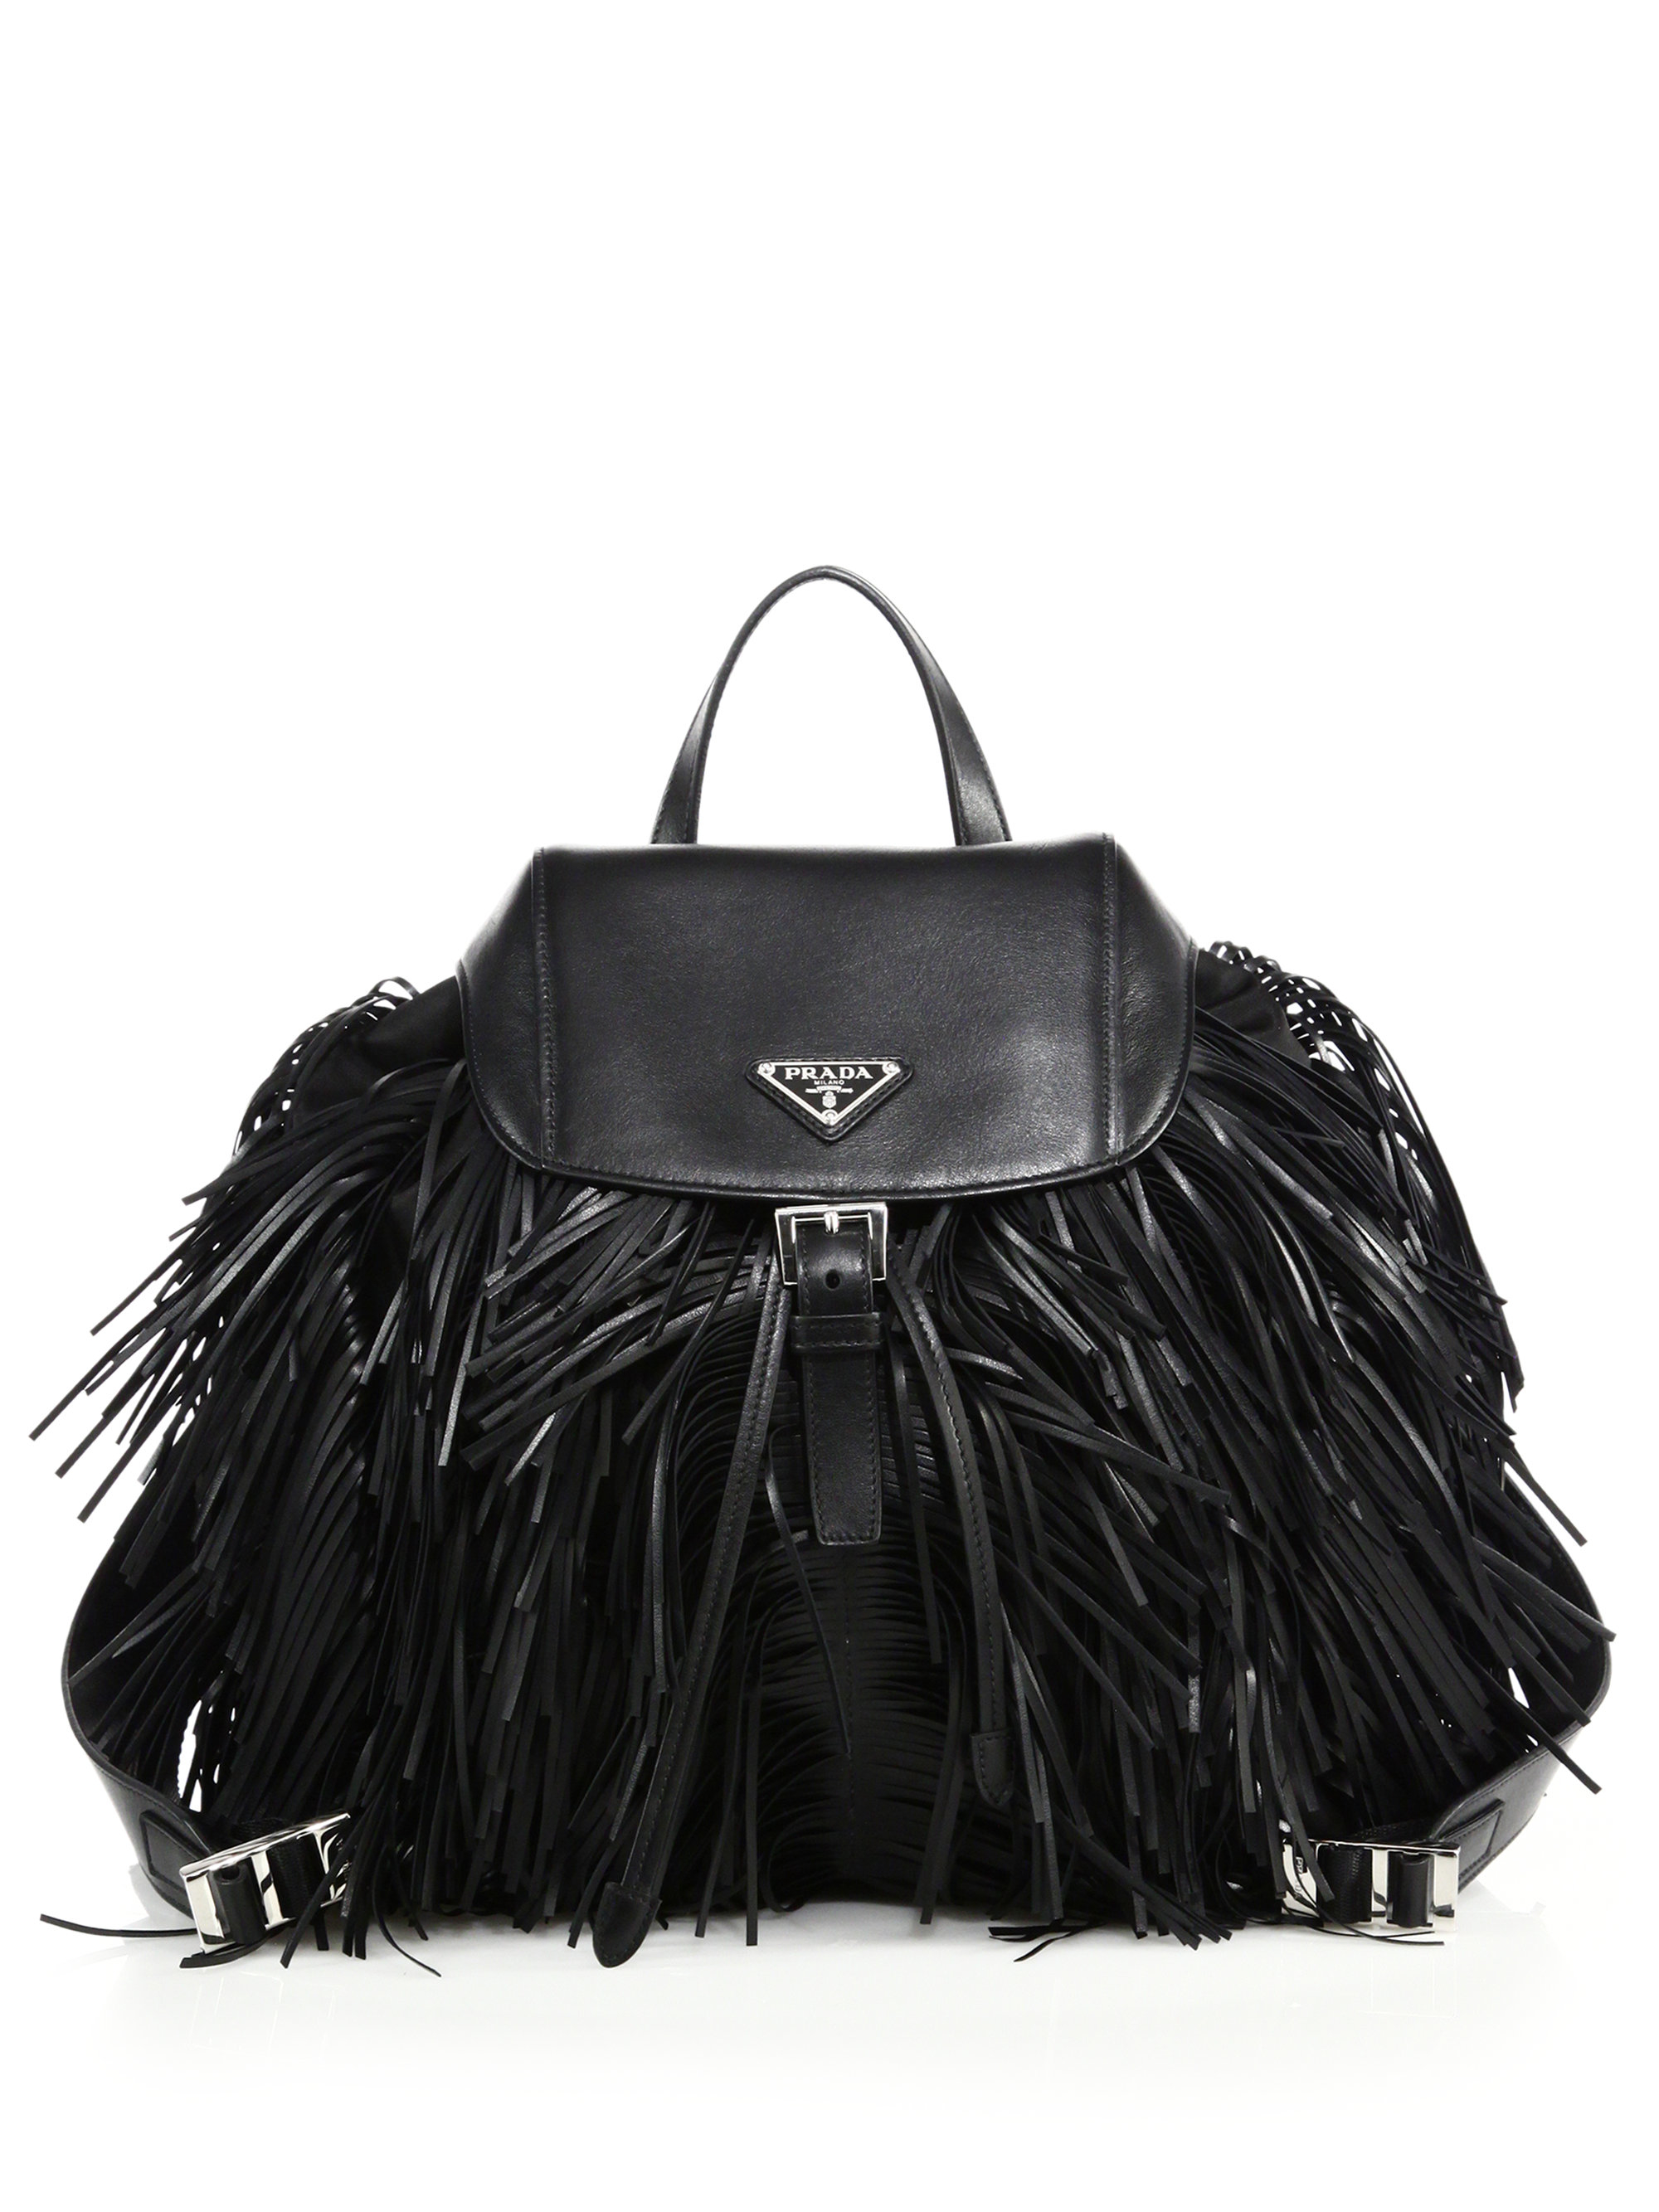 c0937071e67f Prada Fringed Nylon & Leather Backpack in Black - Lyst